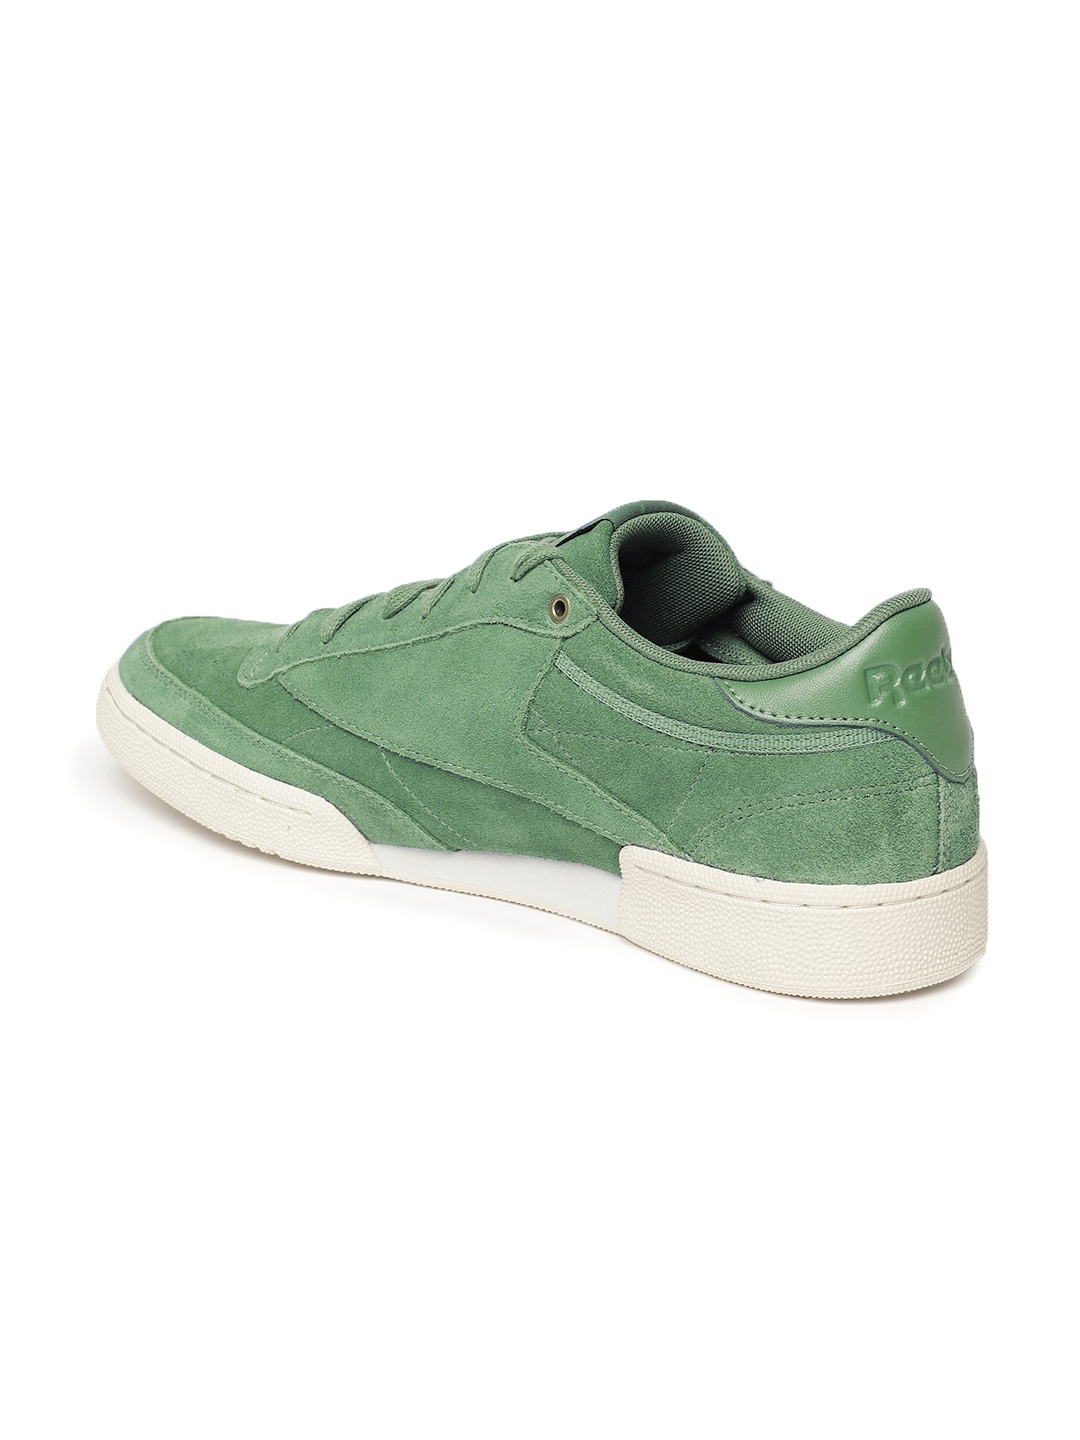 092cbe5192f Buy Reebok Classic Men CLUB C 85 MCC Green Suede Sneakers - Casual ...